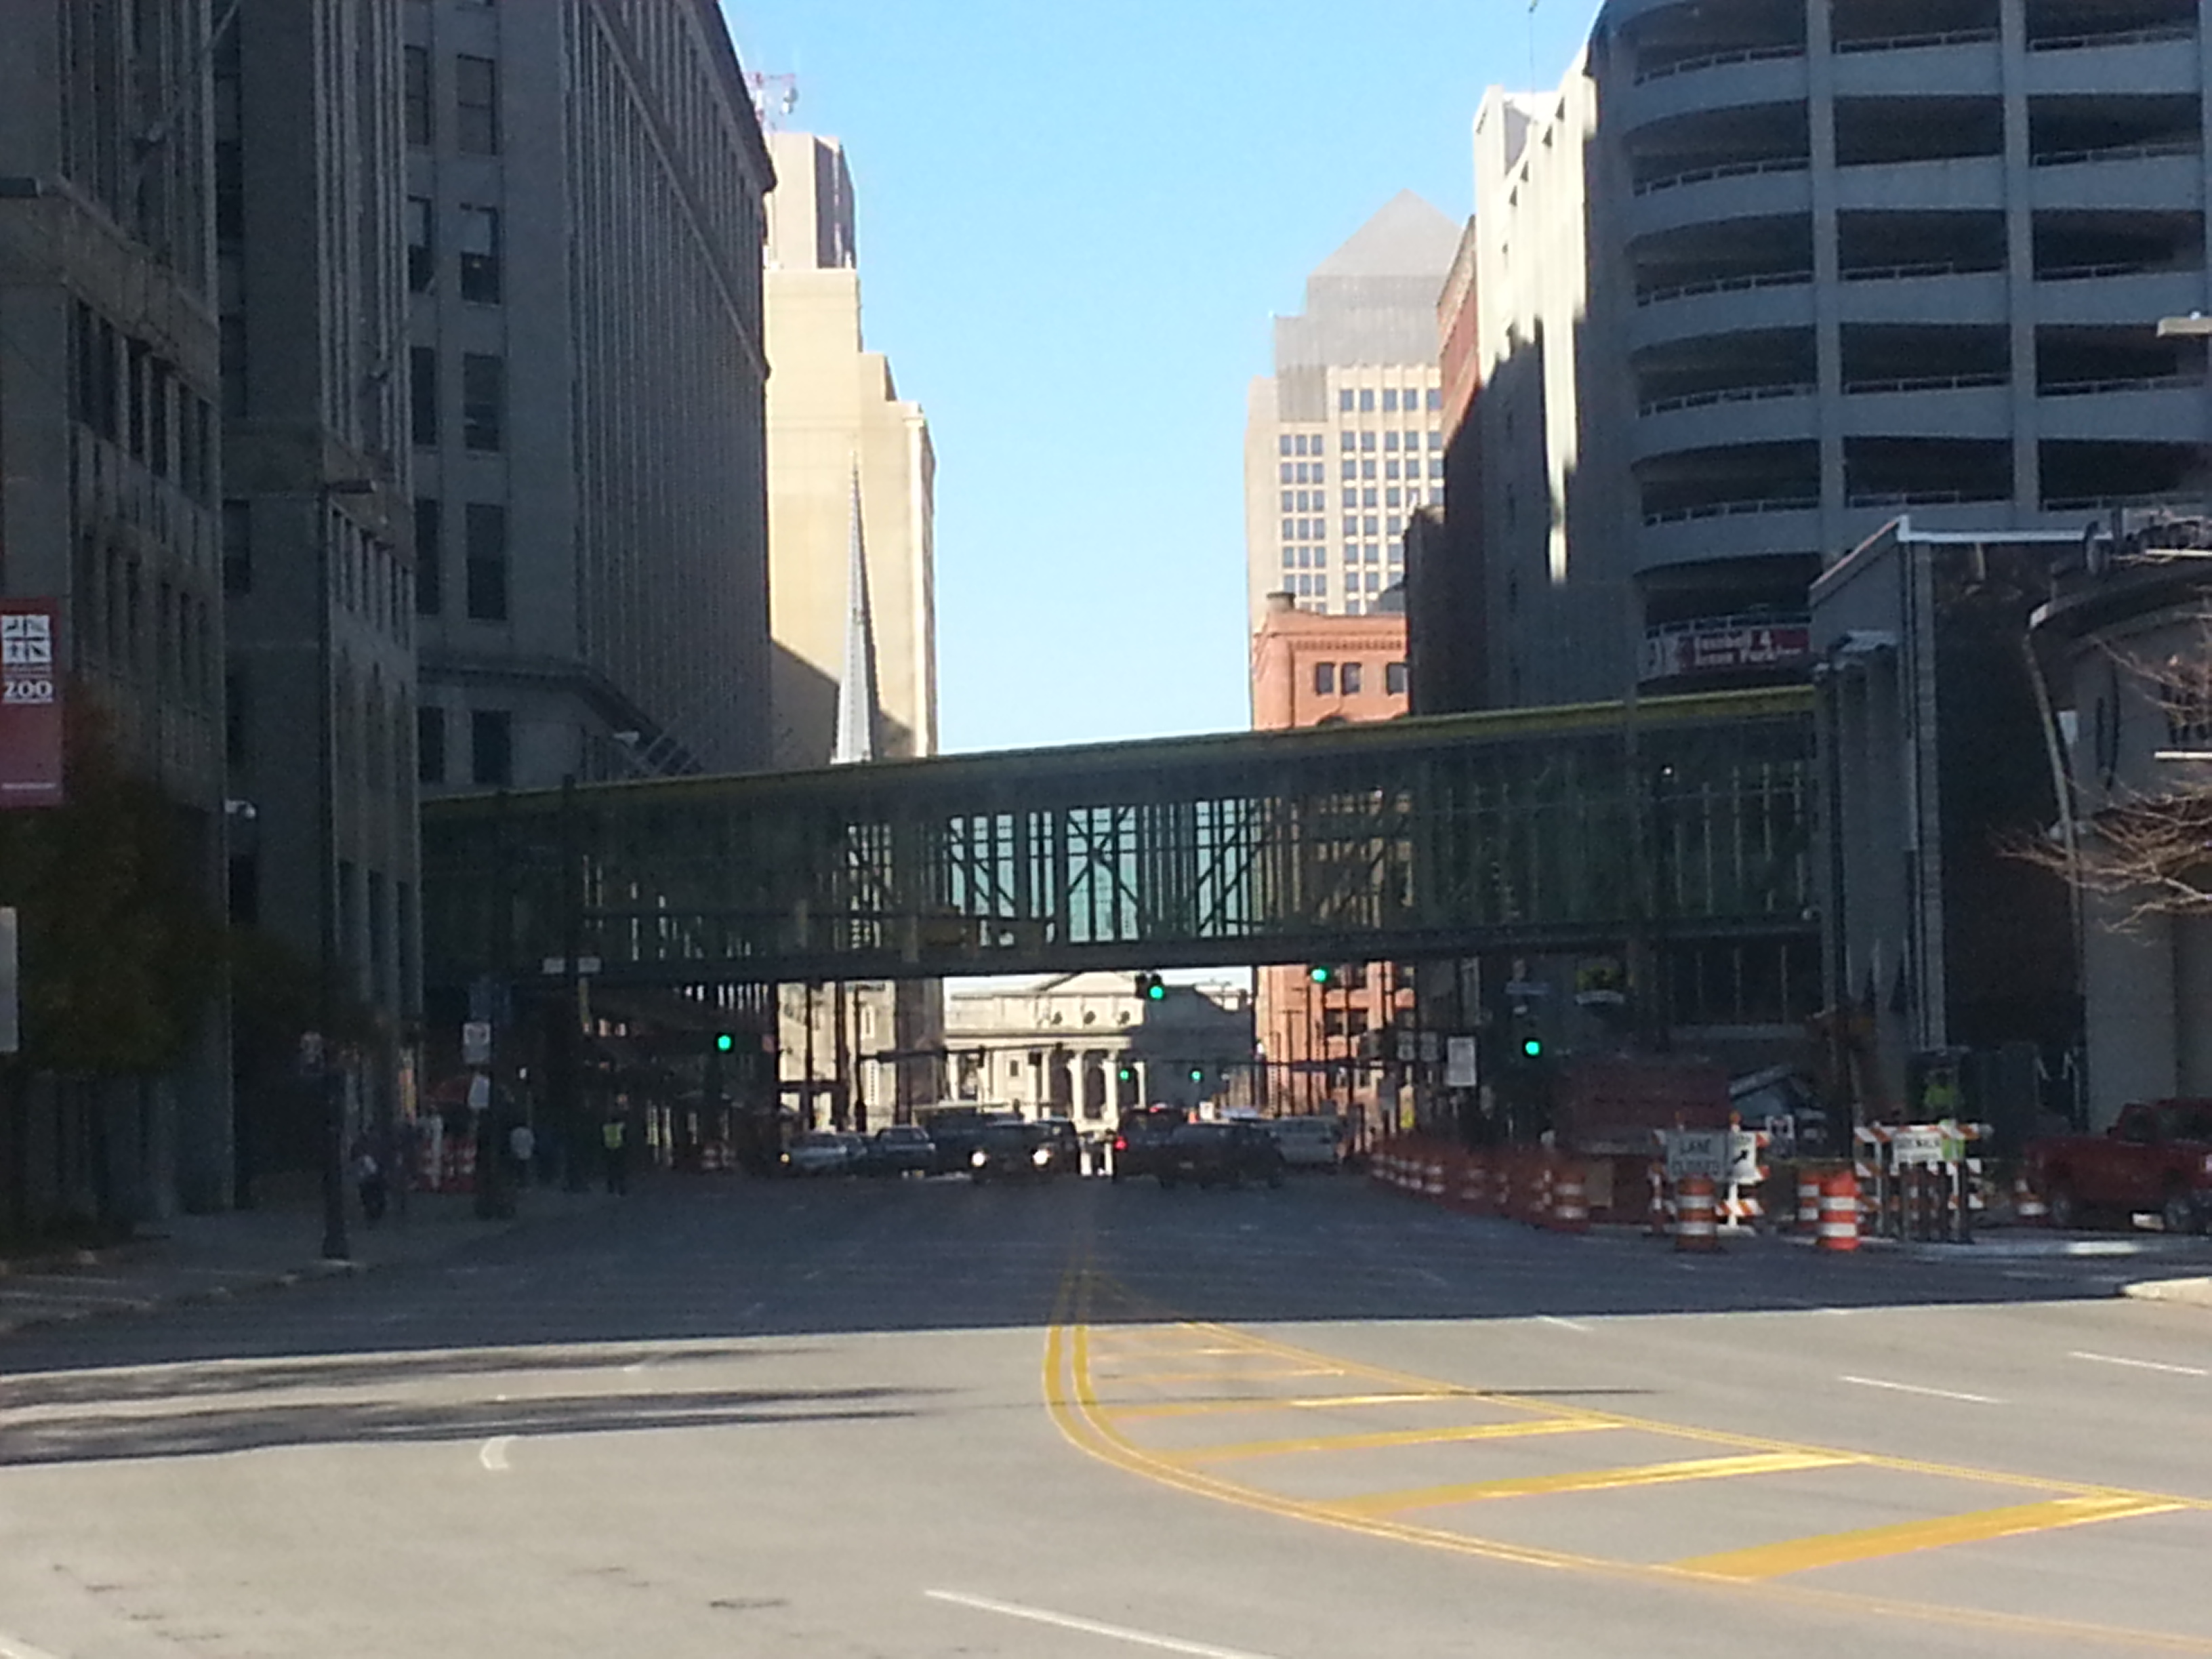 Downtown Cleveland land bridge